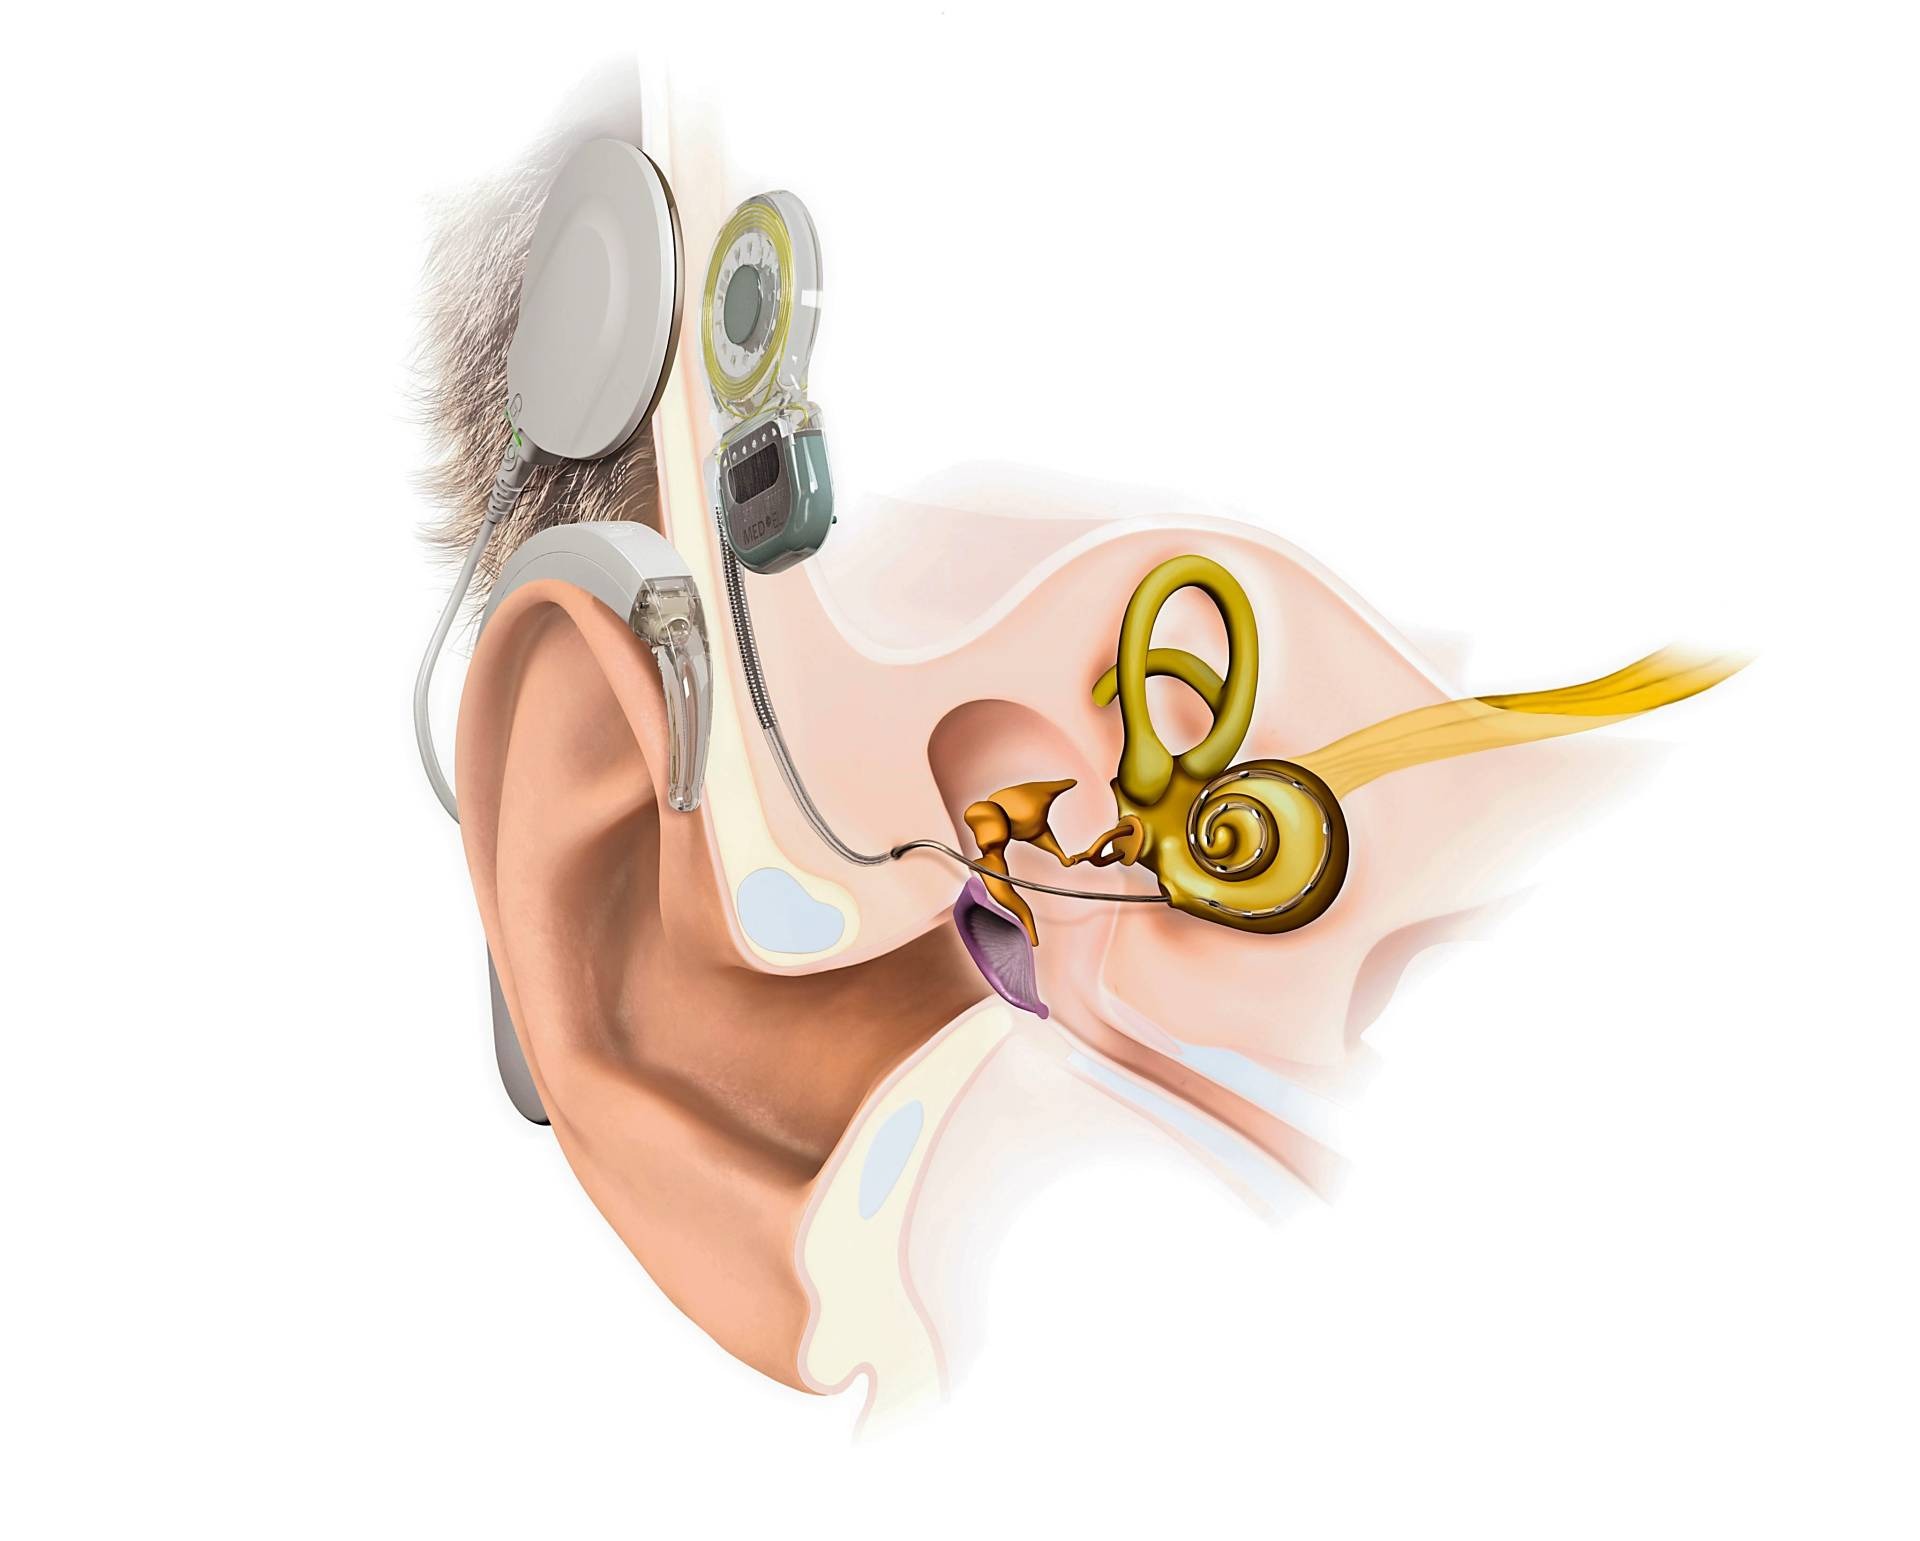 Cochlear implants are one of the ways to restore hearing function to those with SSD. — Med-El